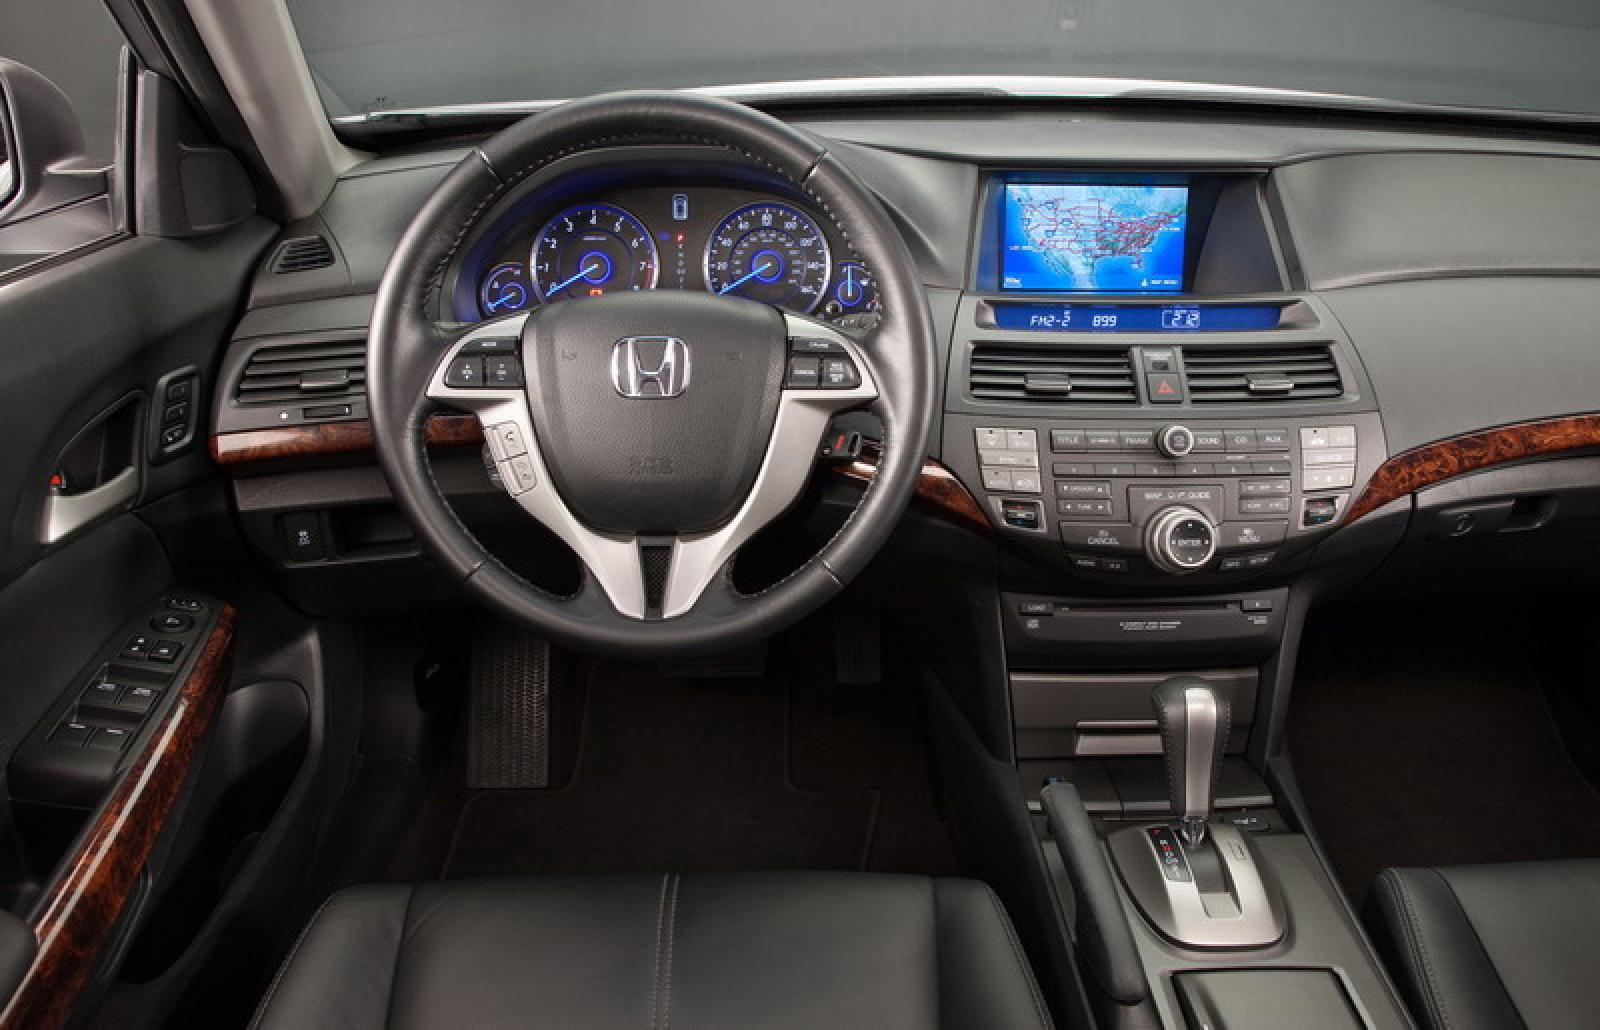 2013 Honda Crosstour Information And Photos Zombiedrive